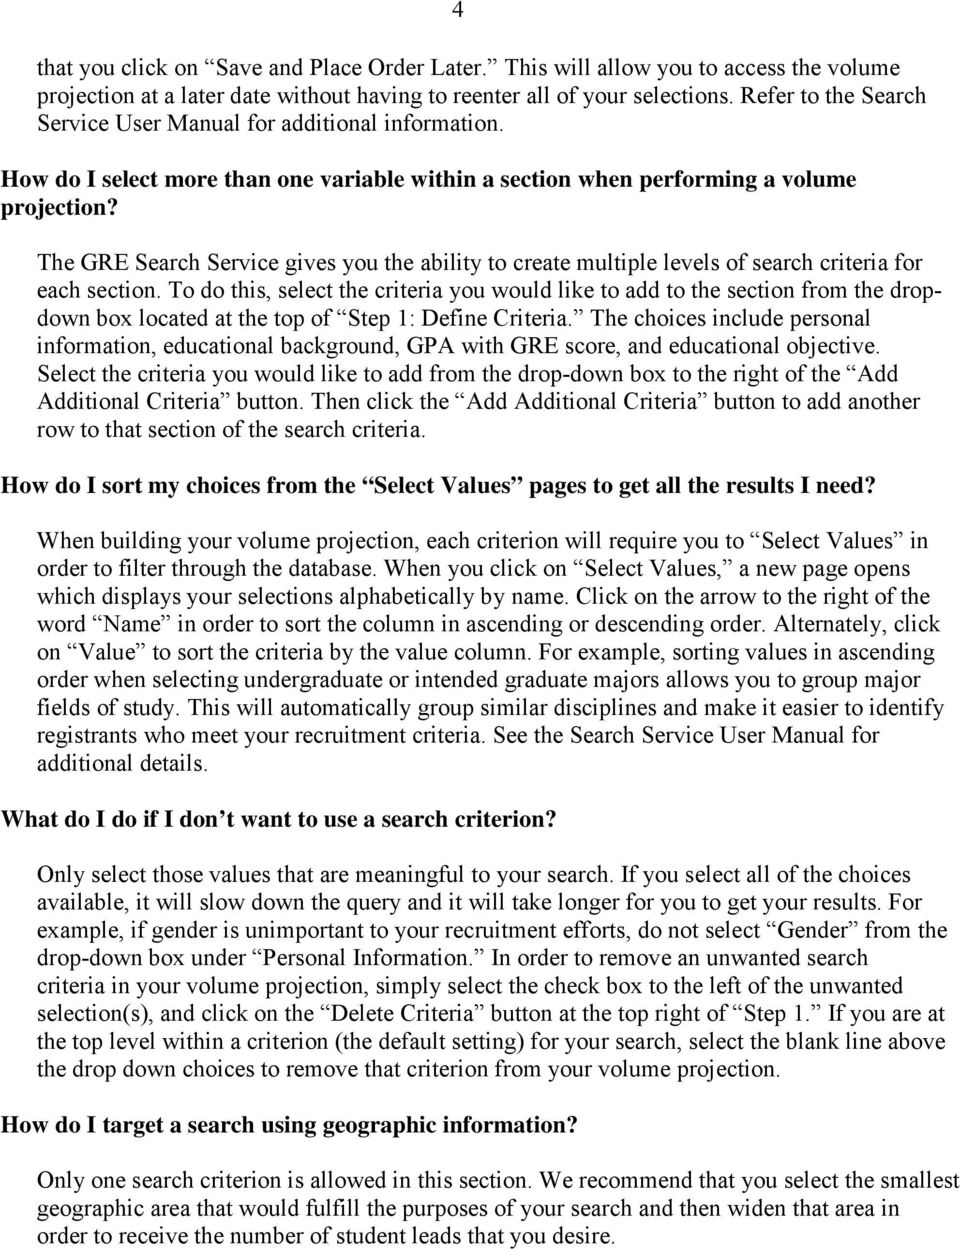 The GRE Search Service gives you the ability to create multiple levels of search criteria for each section.